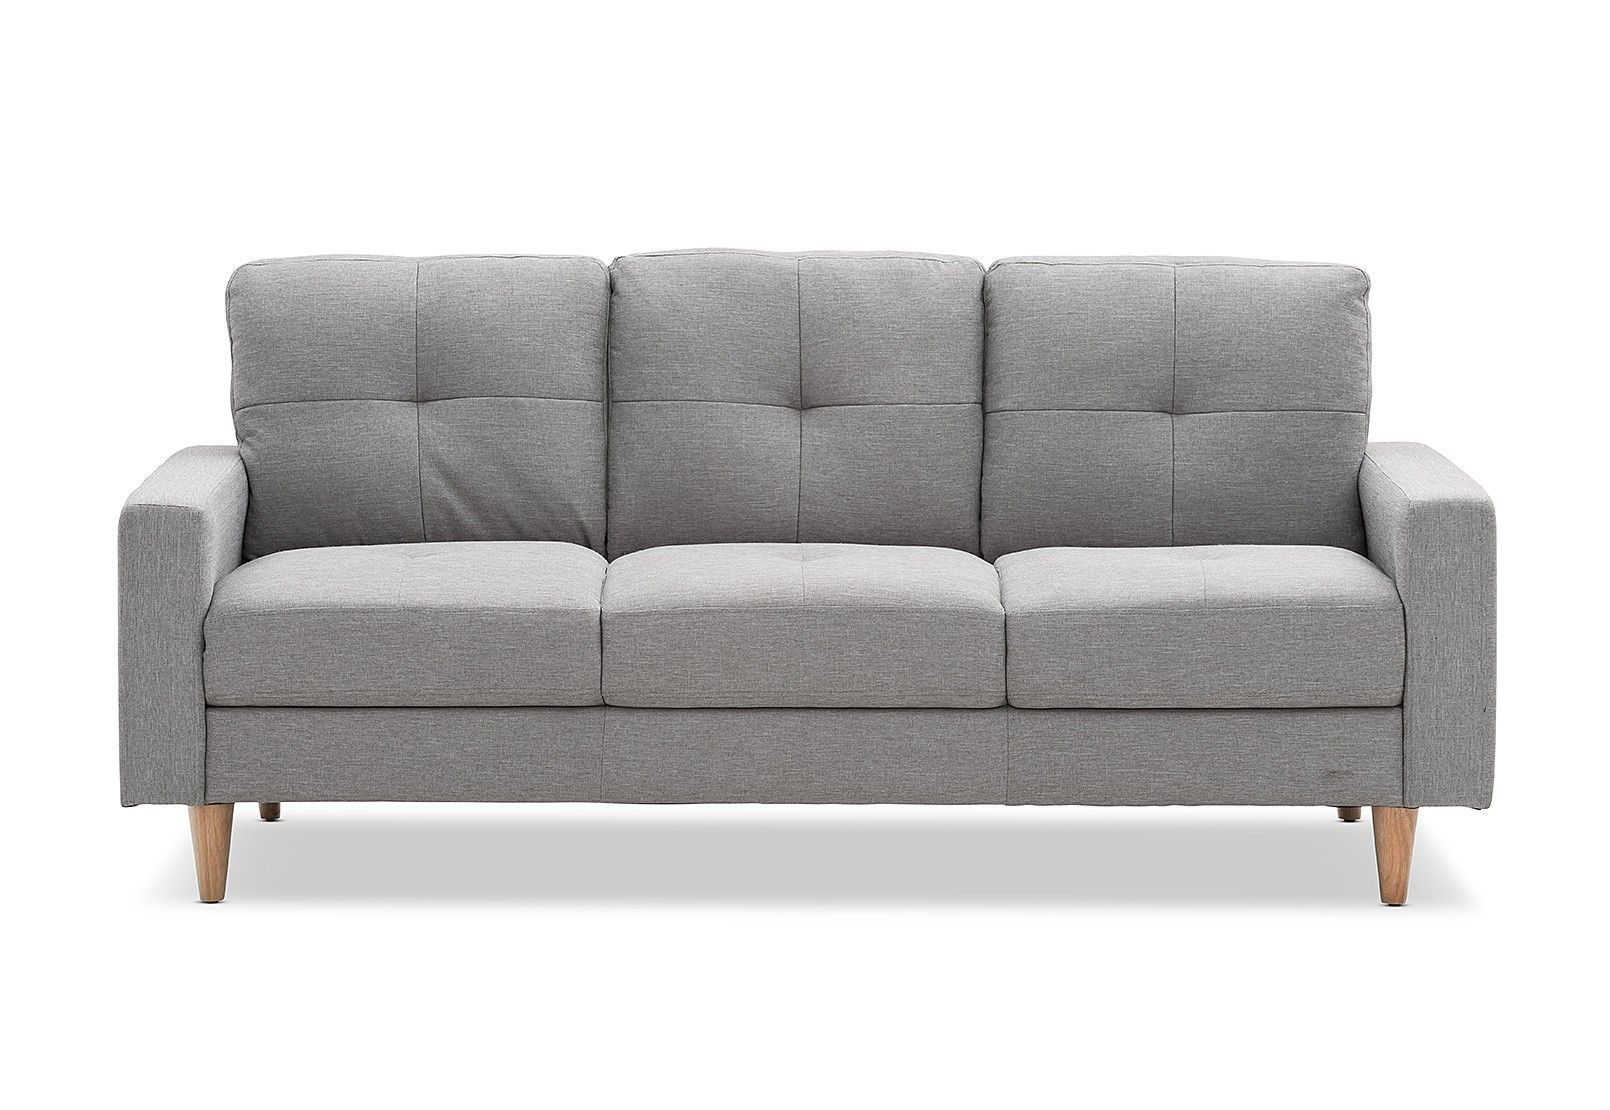 Keller Seater Furniture Offers Sofa Pair